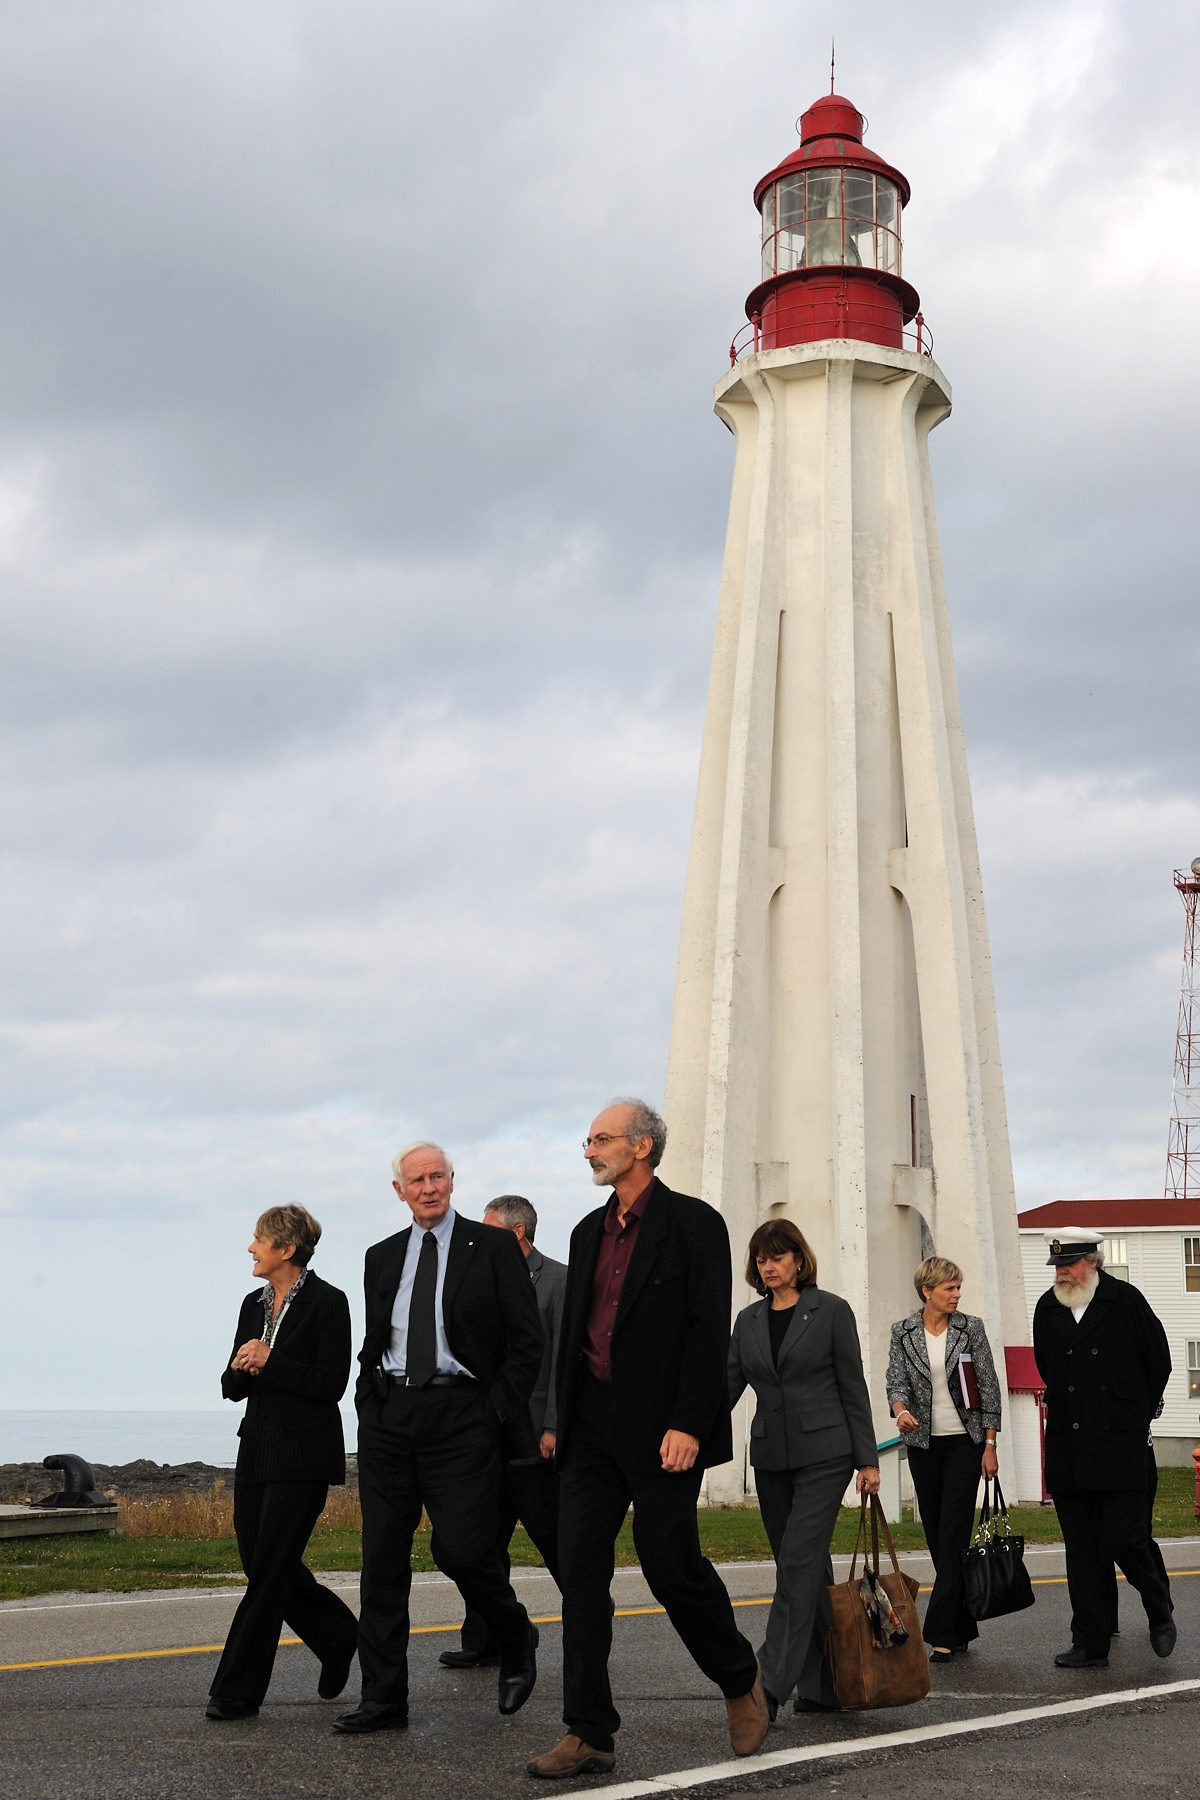 In the afternoon, Their Excellencies visited the Site historique maritime de la Pointe-au-Père, home of the Empress of Ireland Museum and the Onondaga submarine. In addition, in collaboration with Parks Canada, the historic site highlights the importance of the Pointe-au-Père Lighthouse.